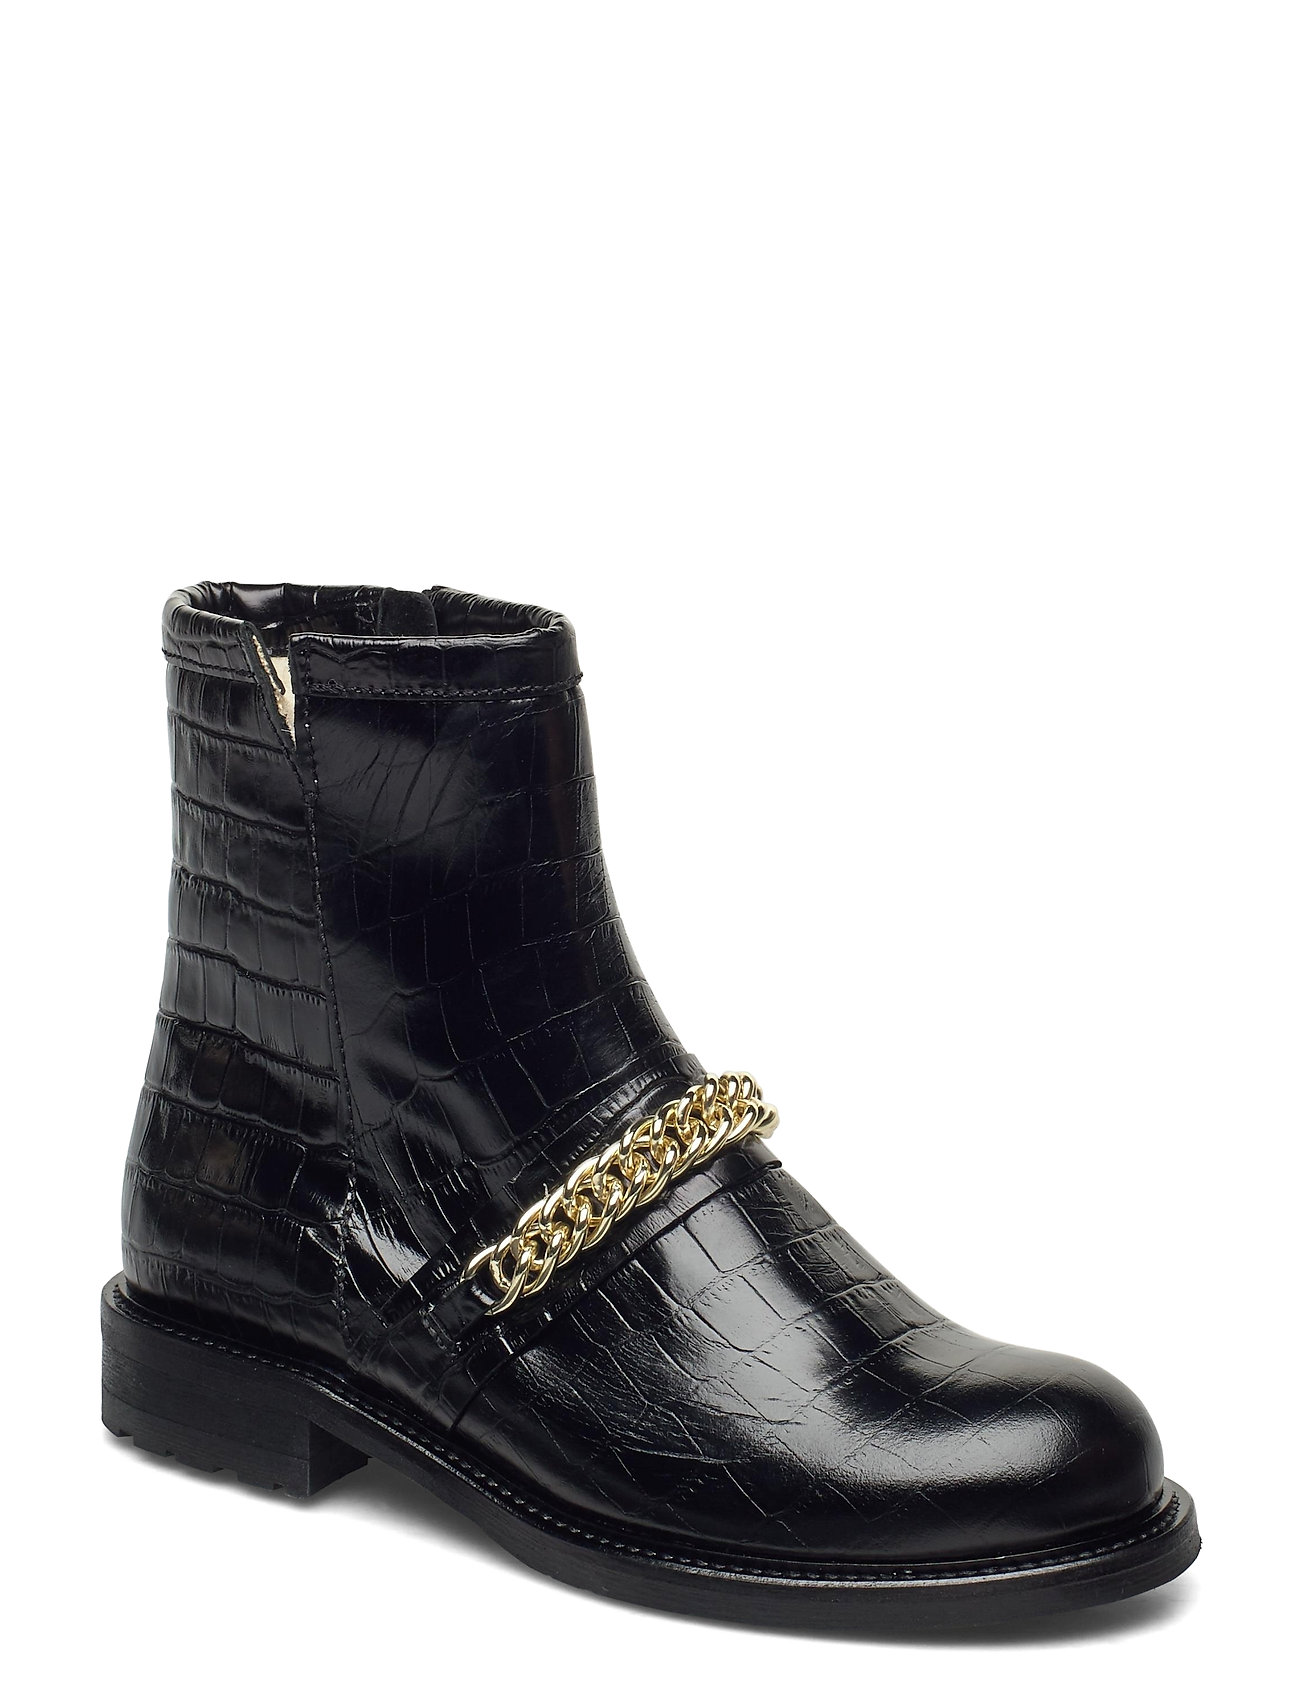 Image of Warm Lining 95891 Shoes Boots Ankle Boots Ankle Boot - Flat Sort Billi Bi (3456993801)